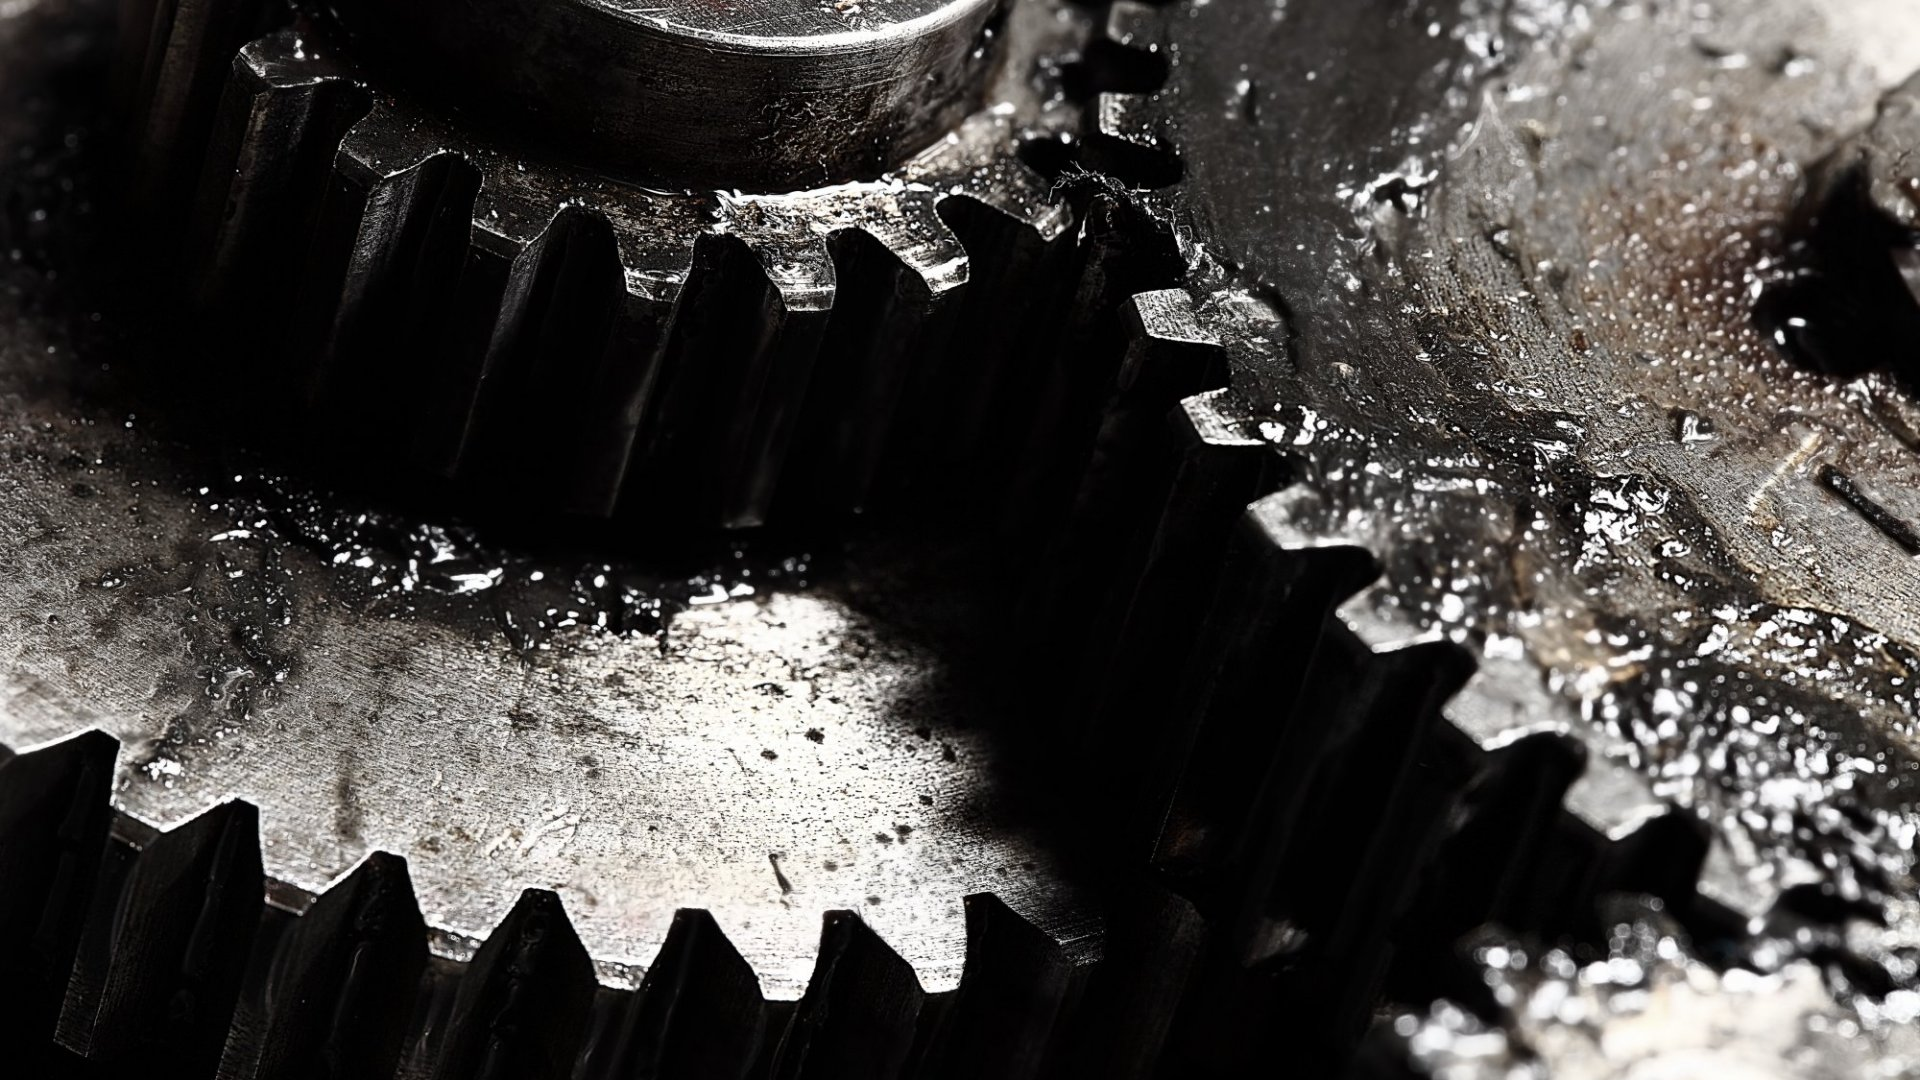 It's common for workforce gears to stop cranking. Keep them cranking by allowing crowdsourcing.